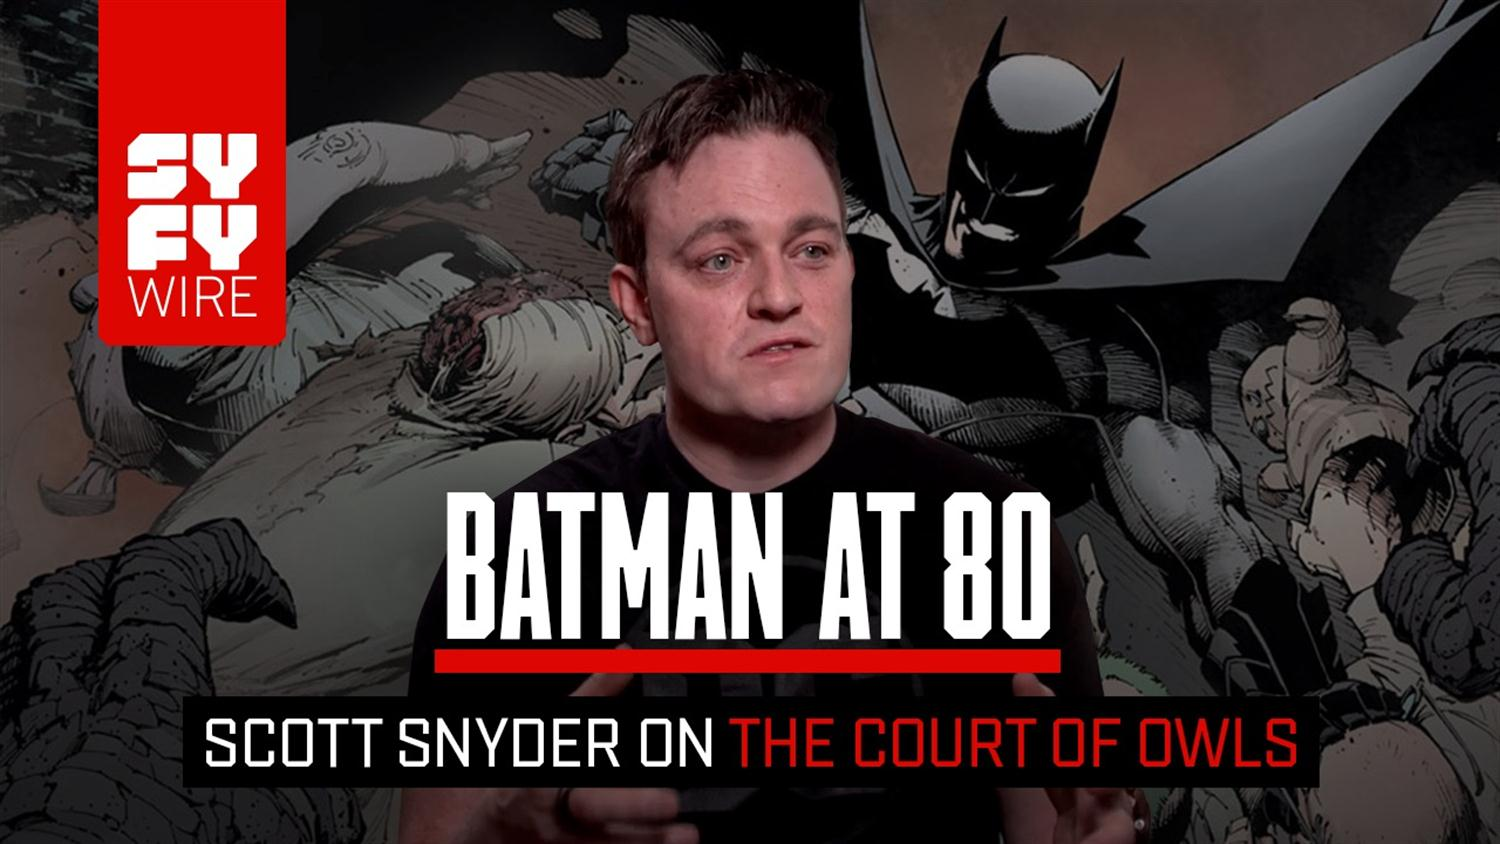 Batman at 80: How The Court of Owls Was Born